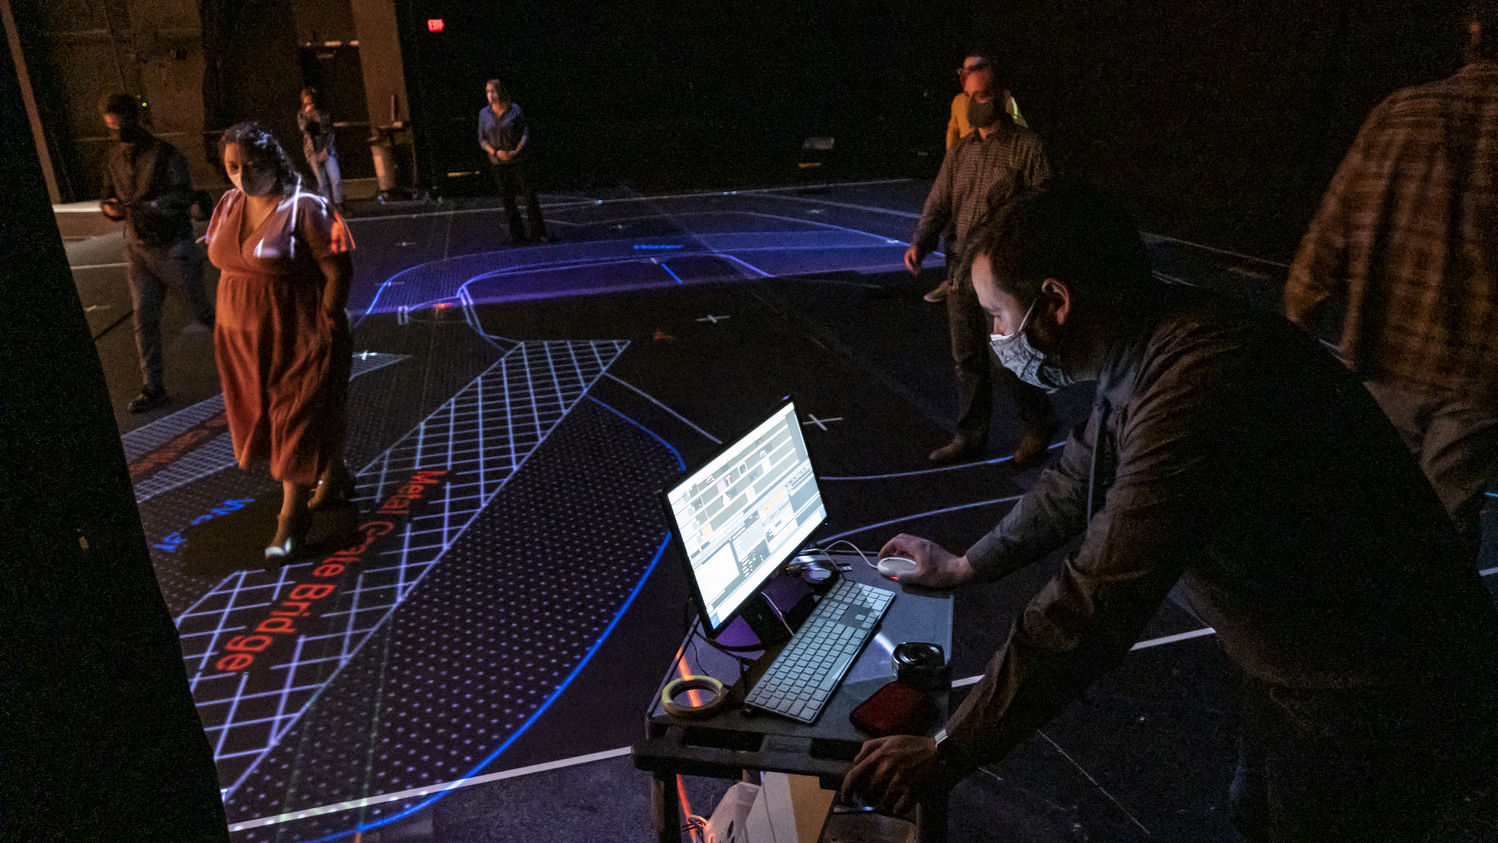 Temple University faculty try out a new projection mapping system.